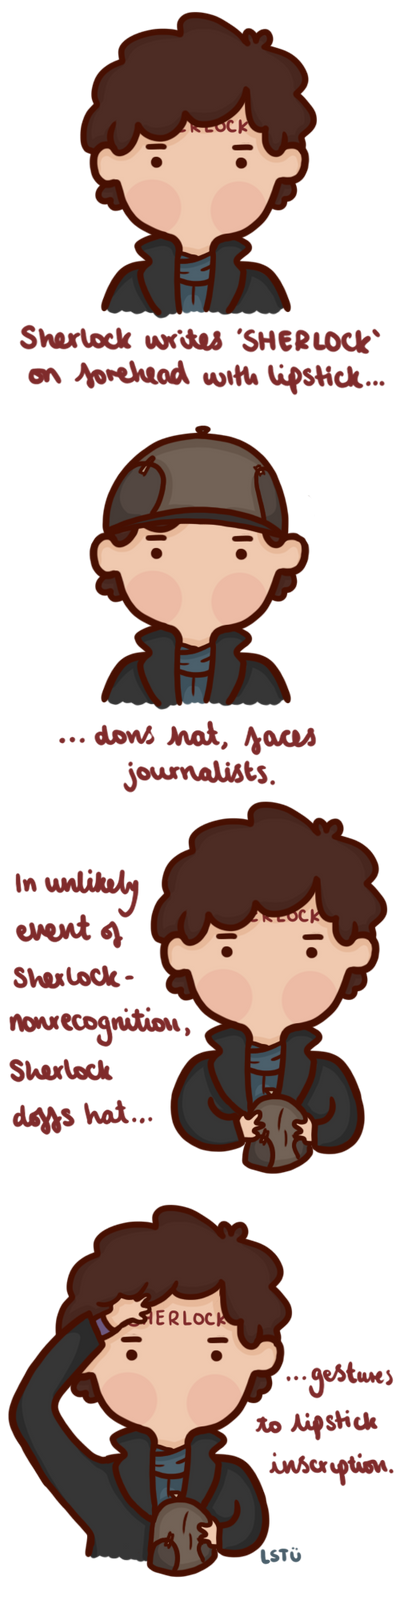 In case of Sherlock nonrecognition...